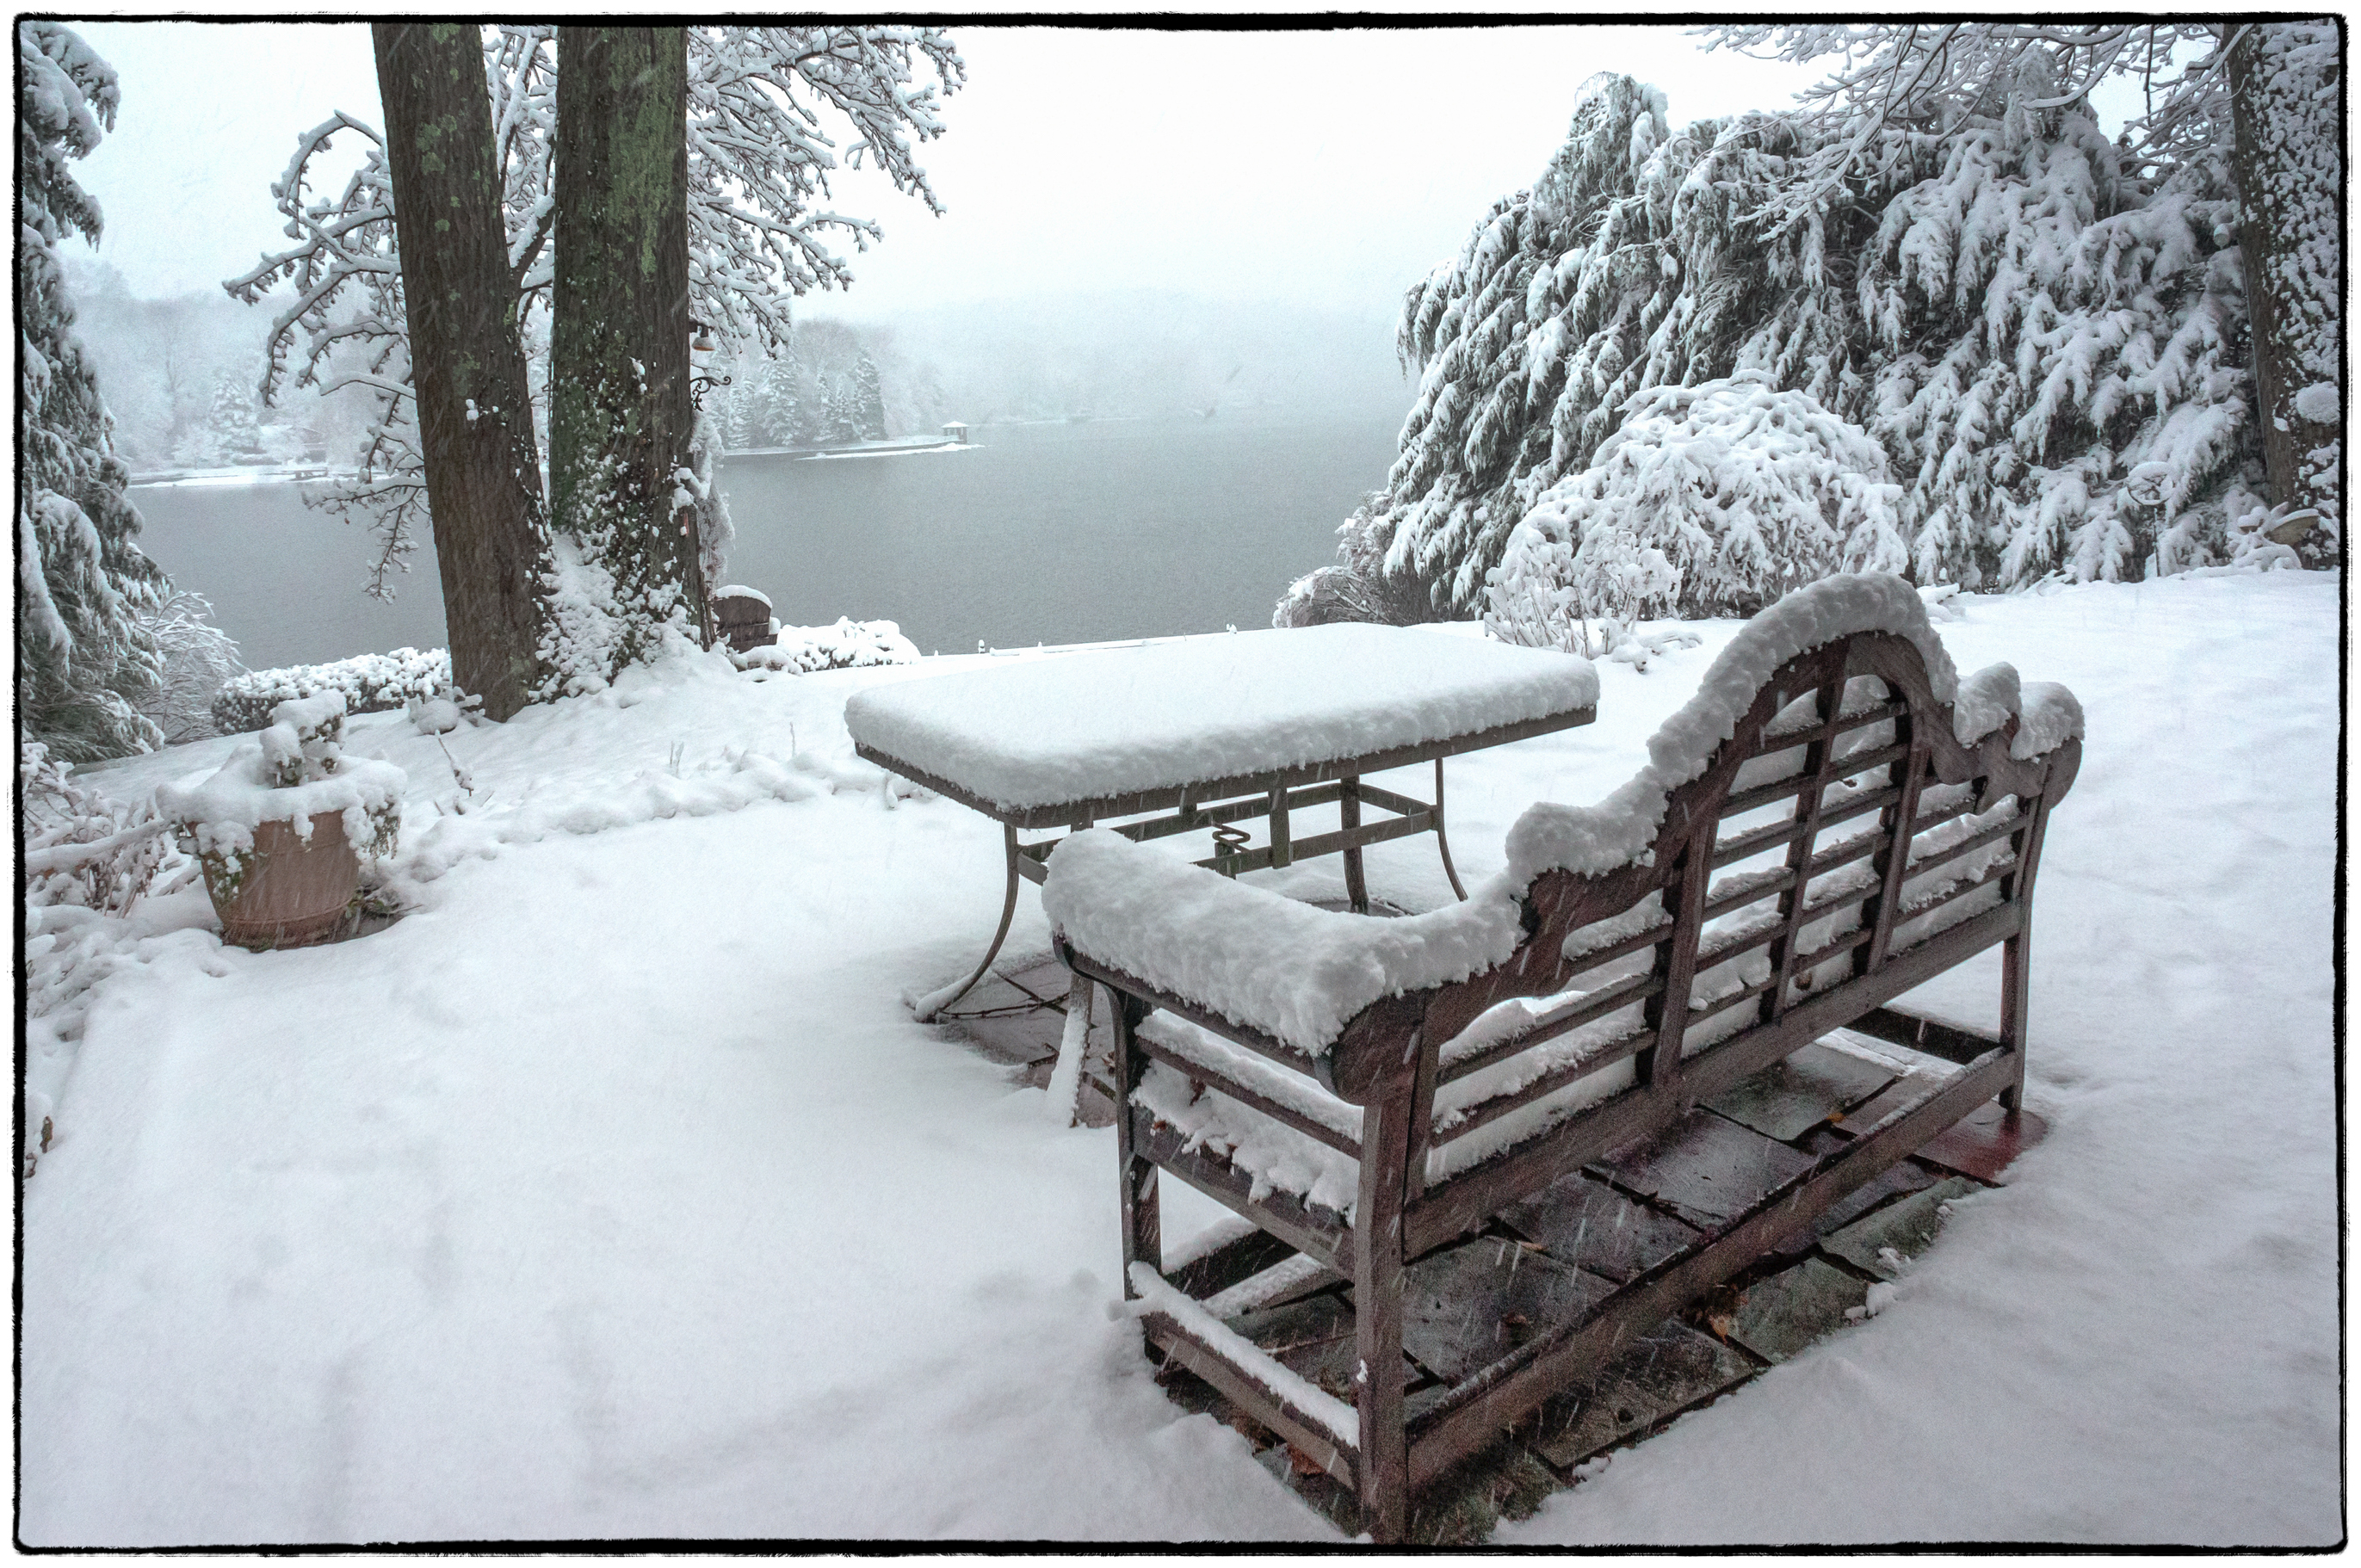 First Serious Snow Of Winter 2014  Photography, Images. Natural Patio Stone Home Depot. Garden Grove Patio Furniture. Back Patio Cellars. Patio Furniture For Sale In Gauteng. Aluminum Patio Covers Kits. Back Porch Fireplace Ideas. Garden Patio Cover. Building A Roof Over Your Patio